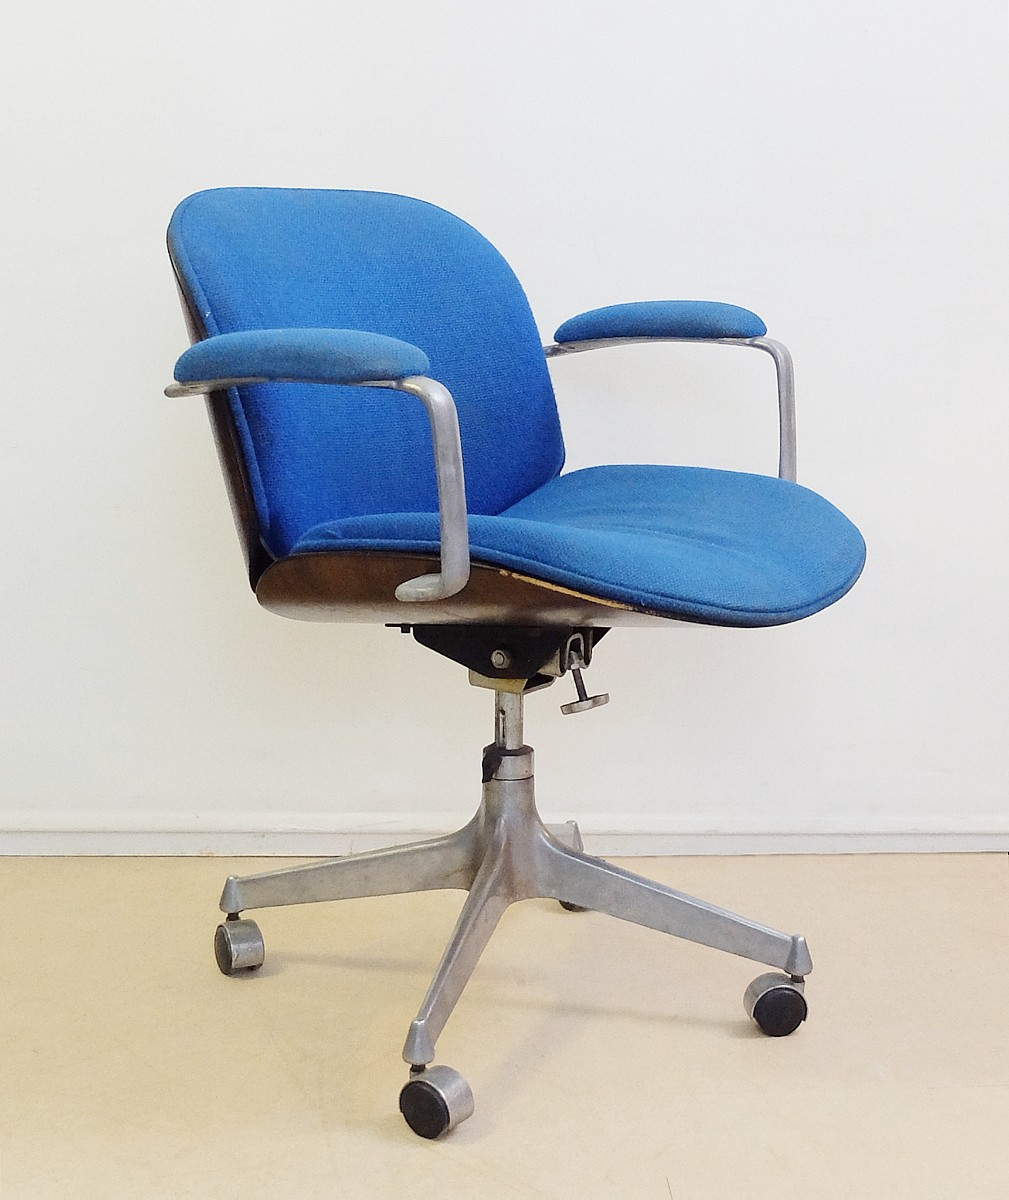 Swivel Office Chairs Of Terni Series With Armrests By I Parisi For Mim Roma Chair Seating Via Antica